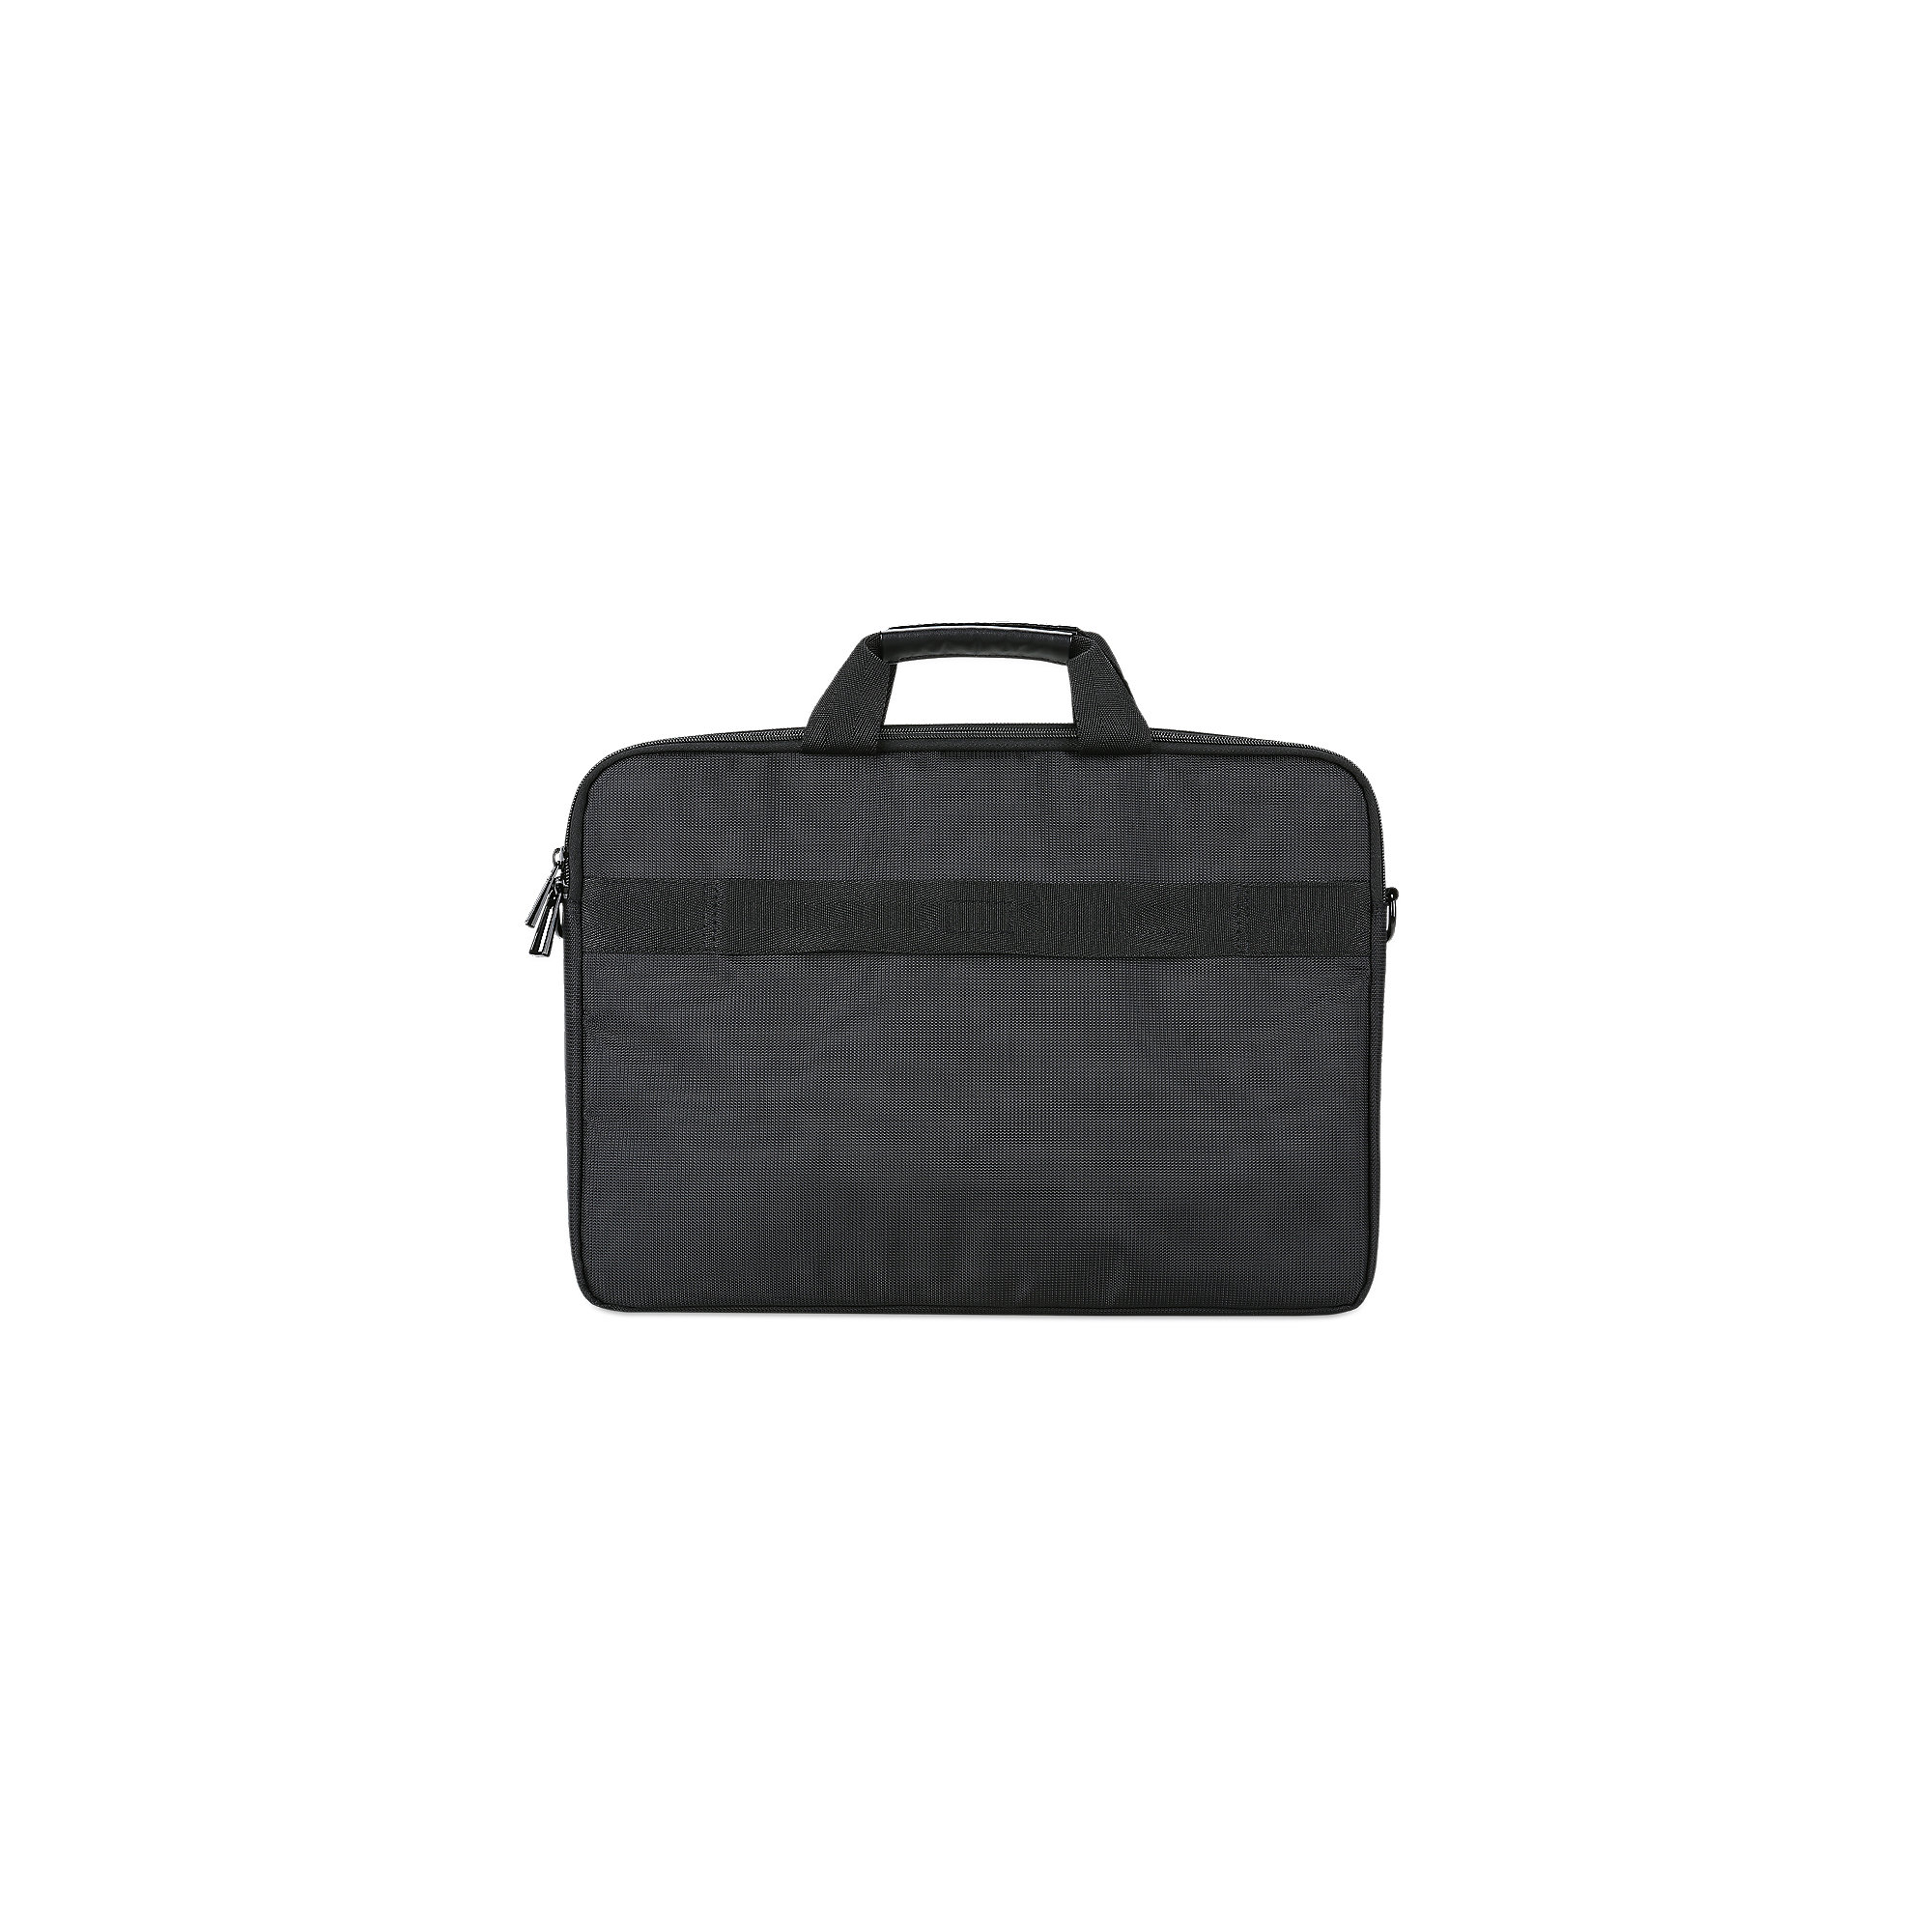 "Acer Notebook Carry Case 15.6"" schwarz"